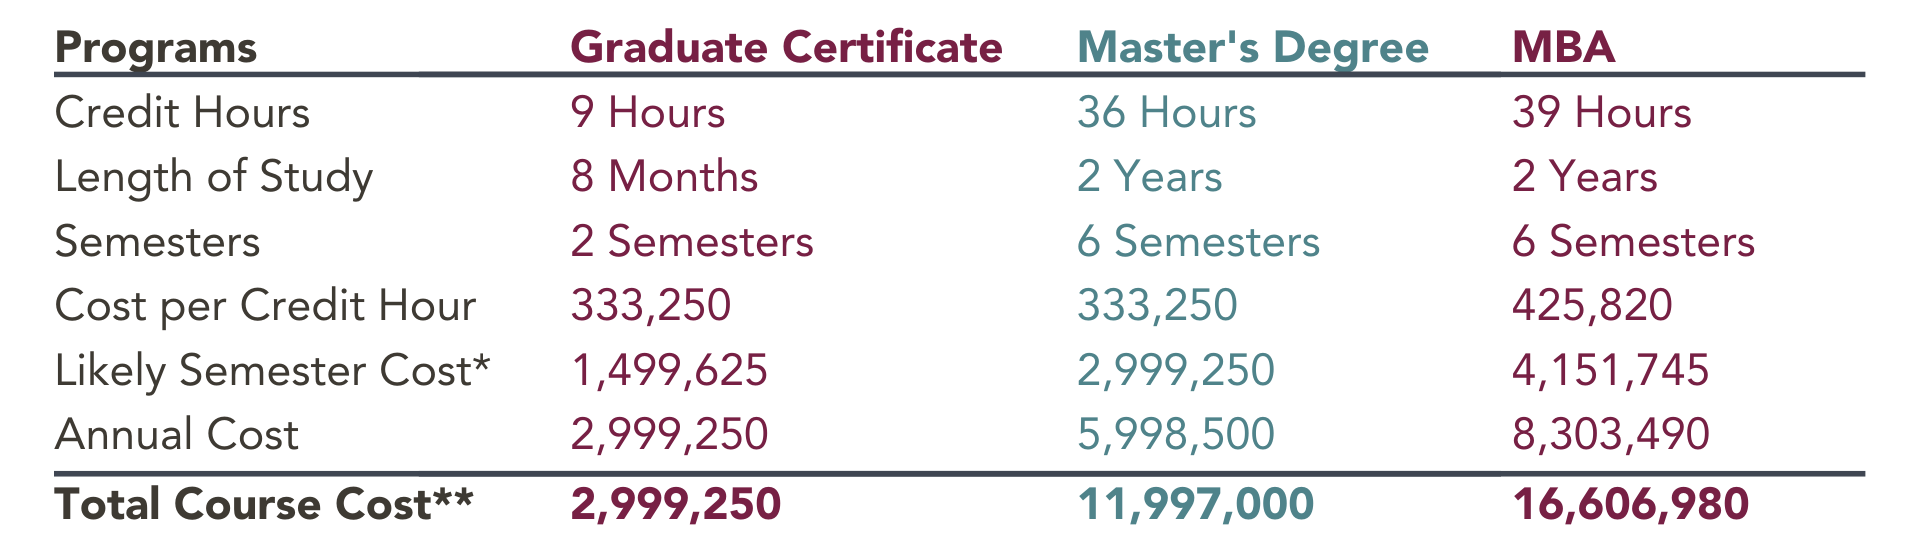 Master's Degree 36 Hours 2 Years 6 Semesters 333,250 2,999,250 5,998,500 11,997,000-5